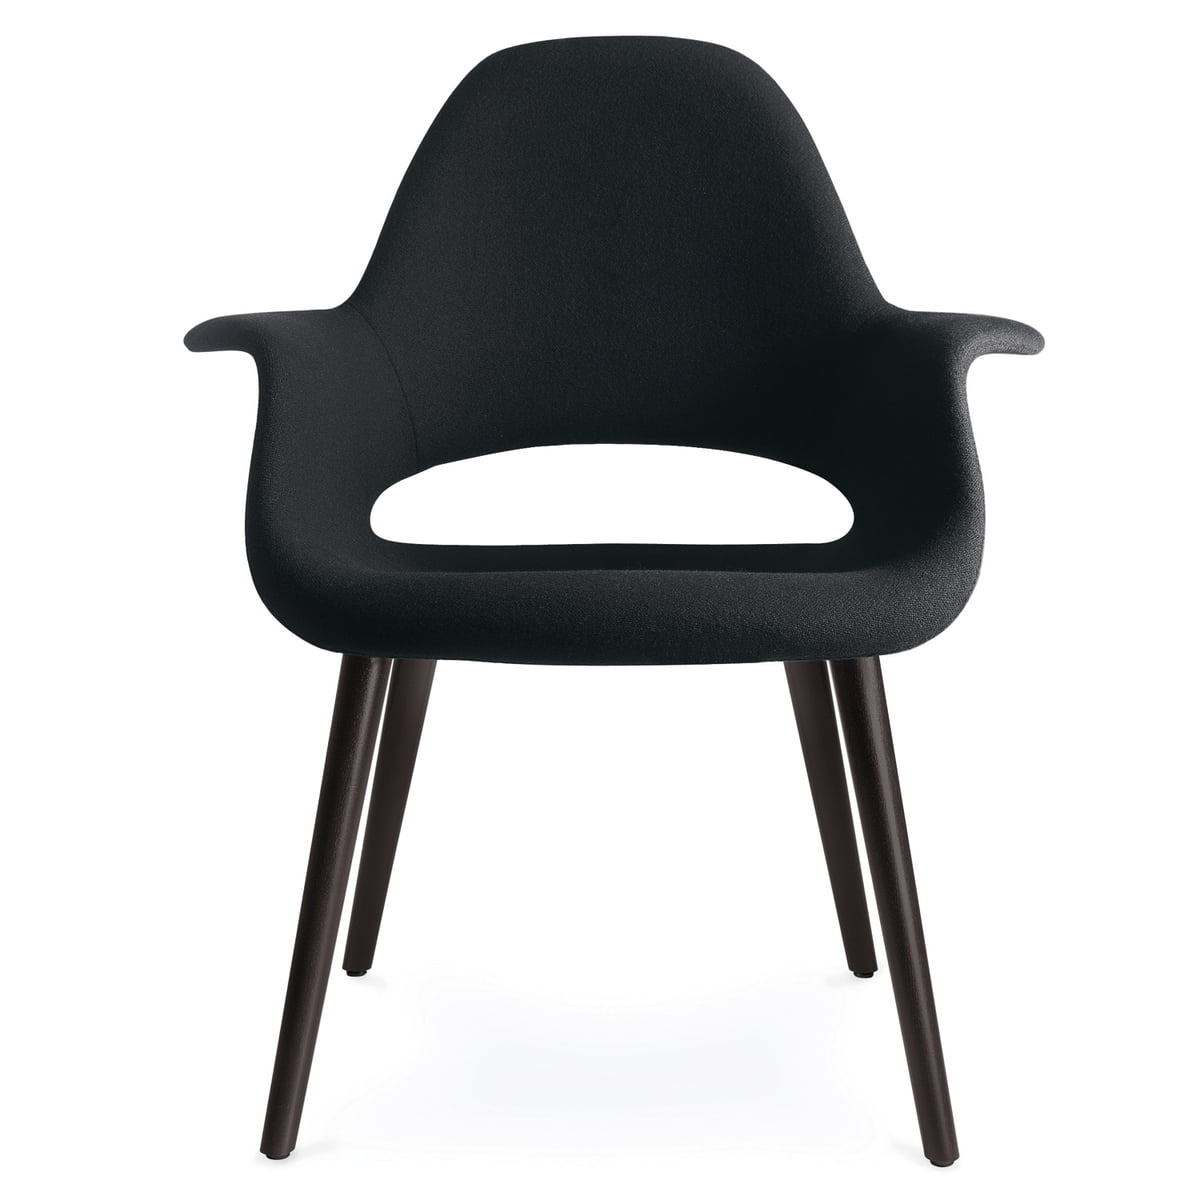 The Organic Chair By Vitra In The Design Shop